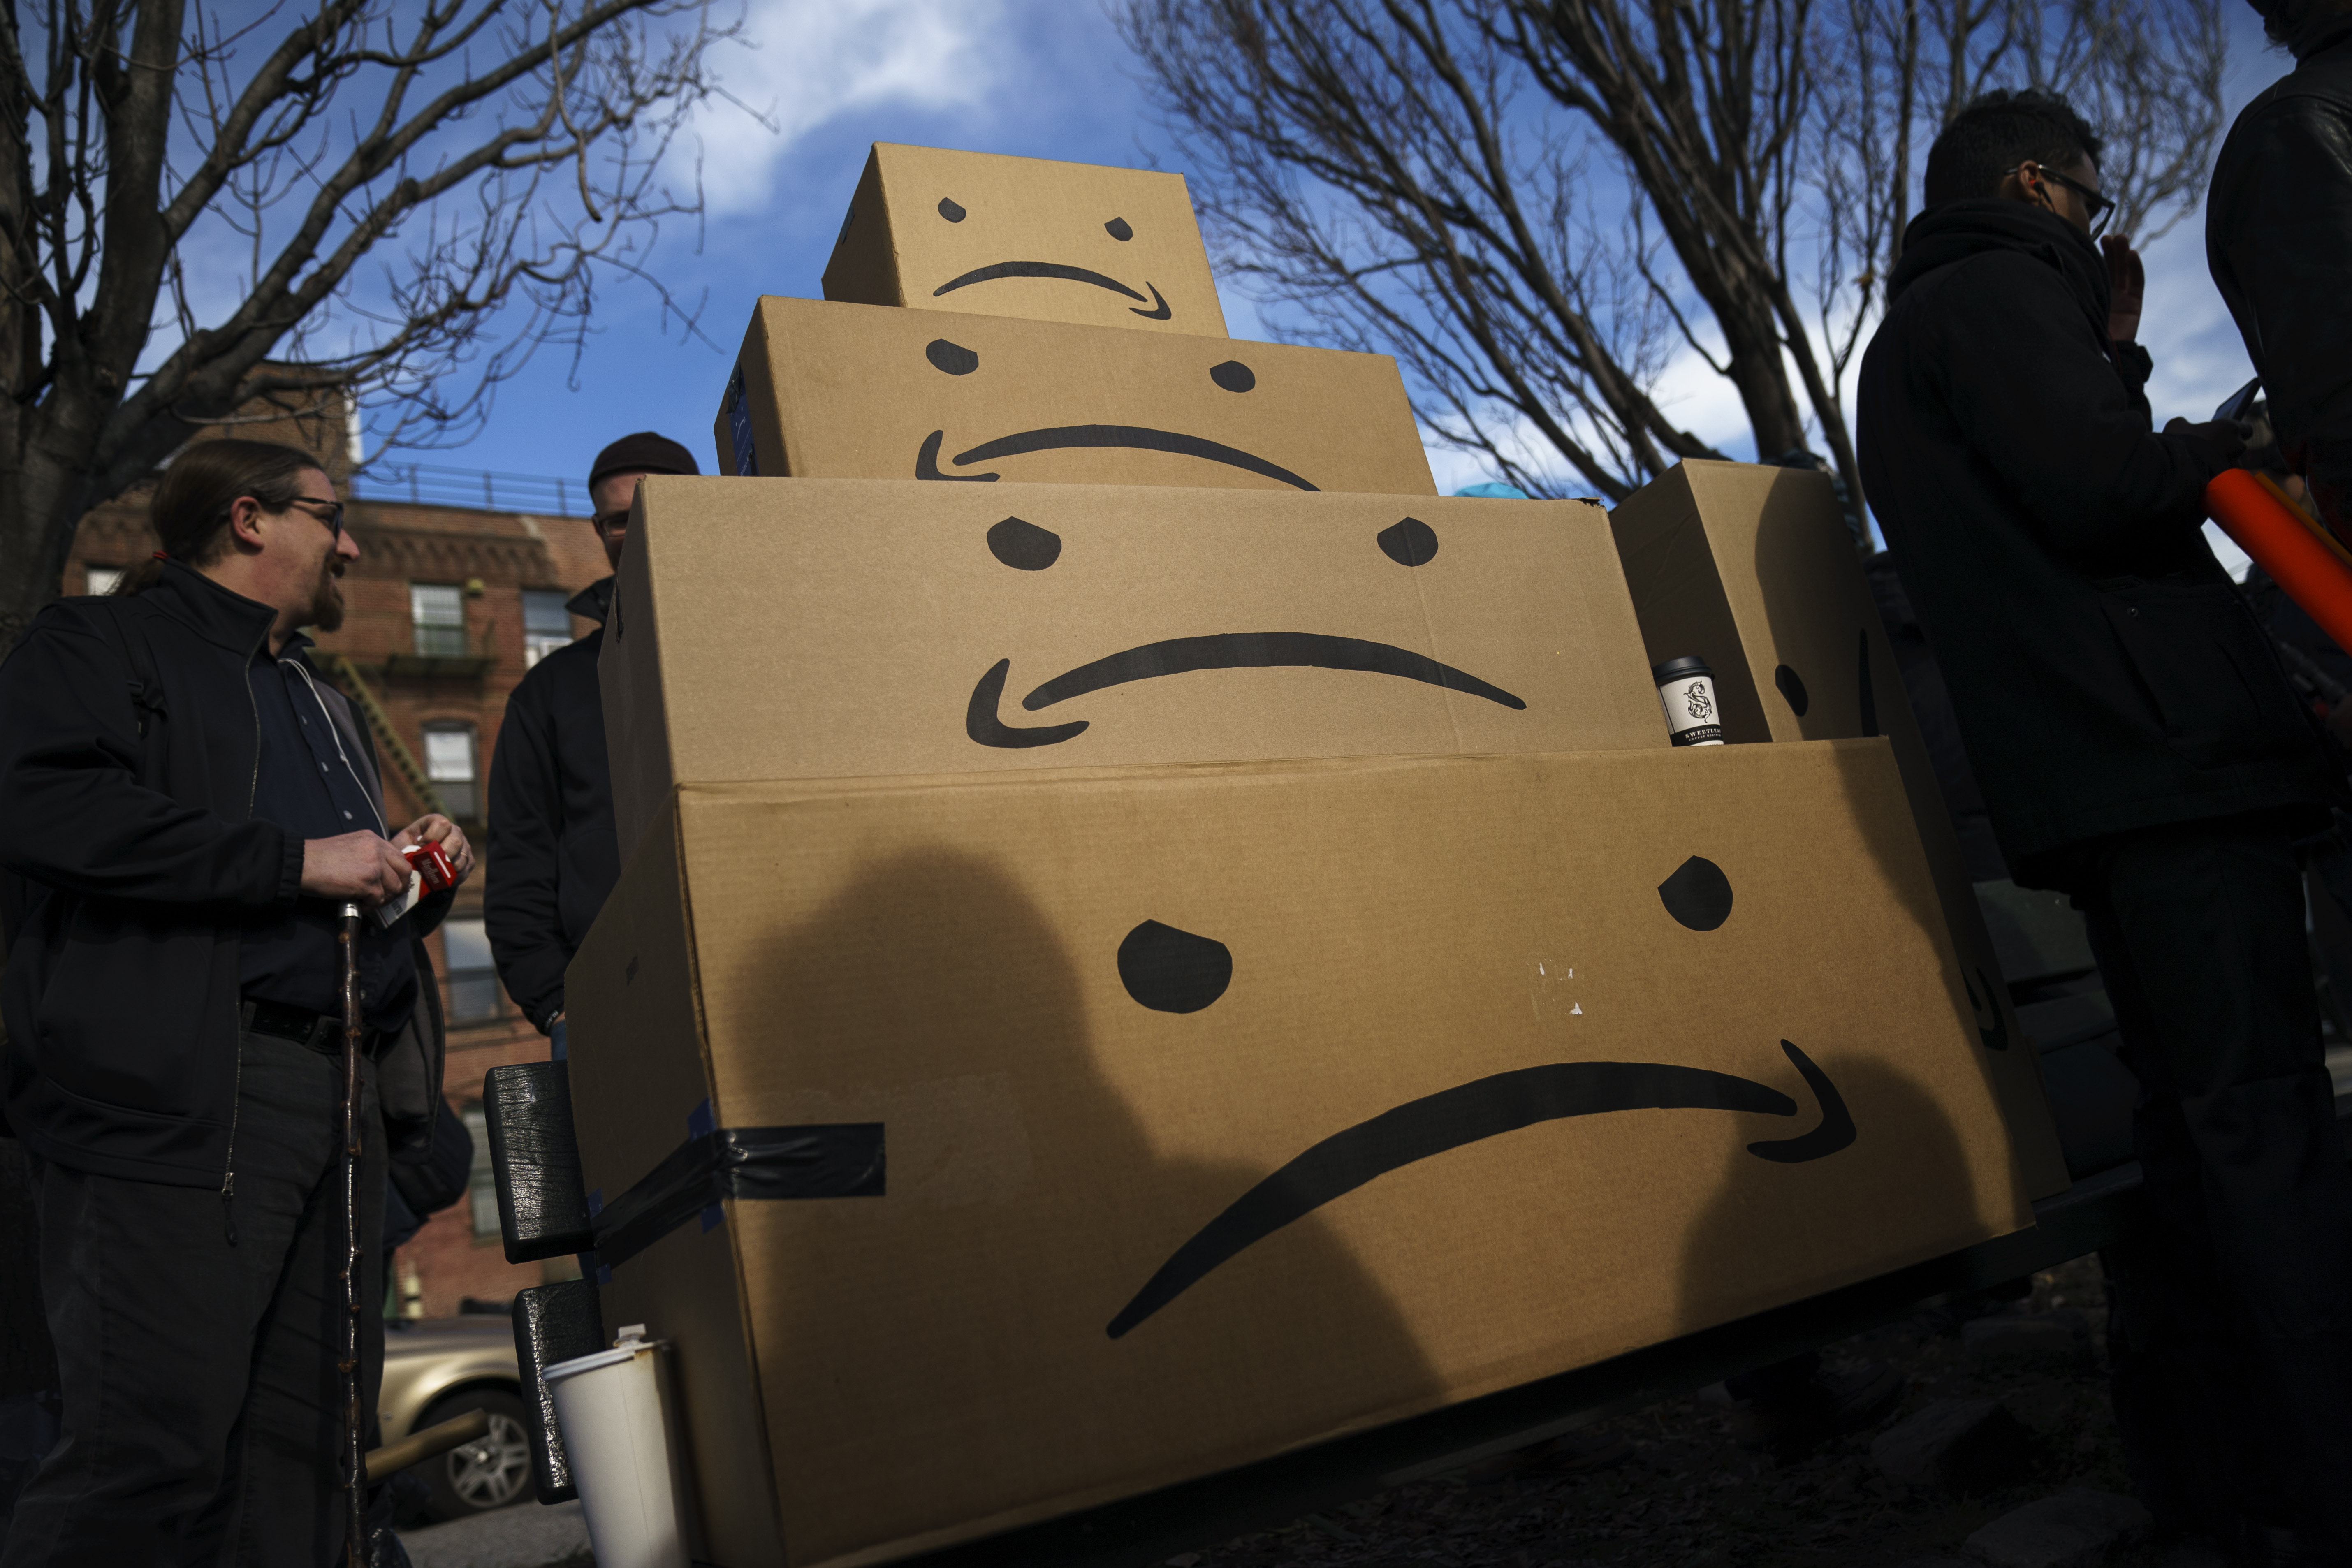 What does Amazon owe New York City?